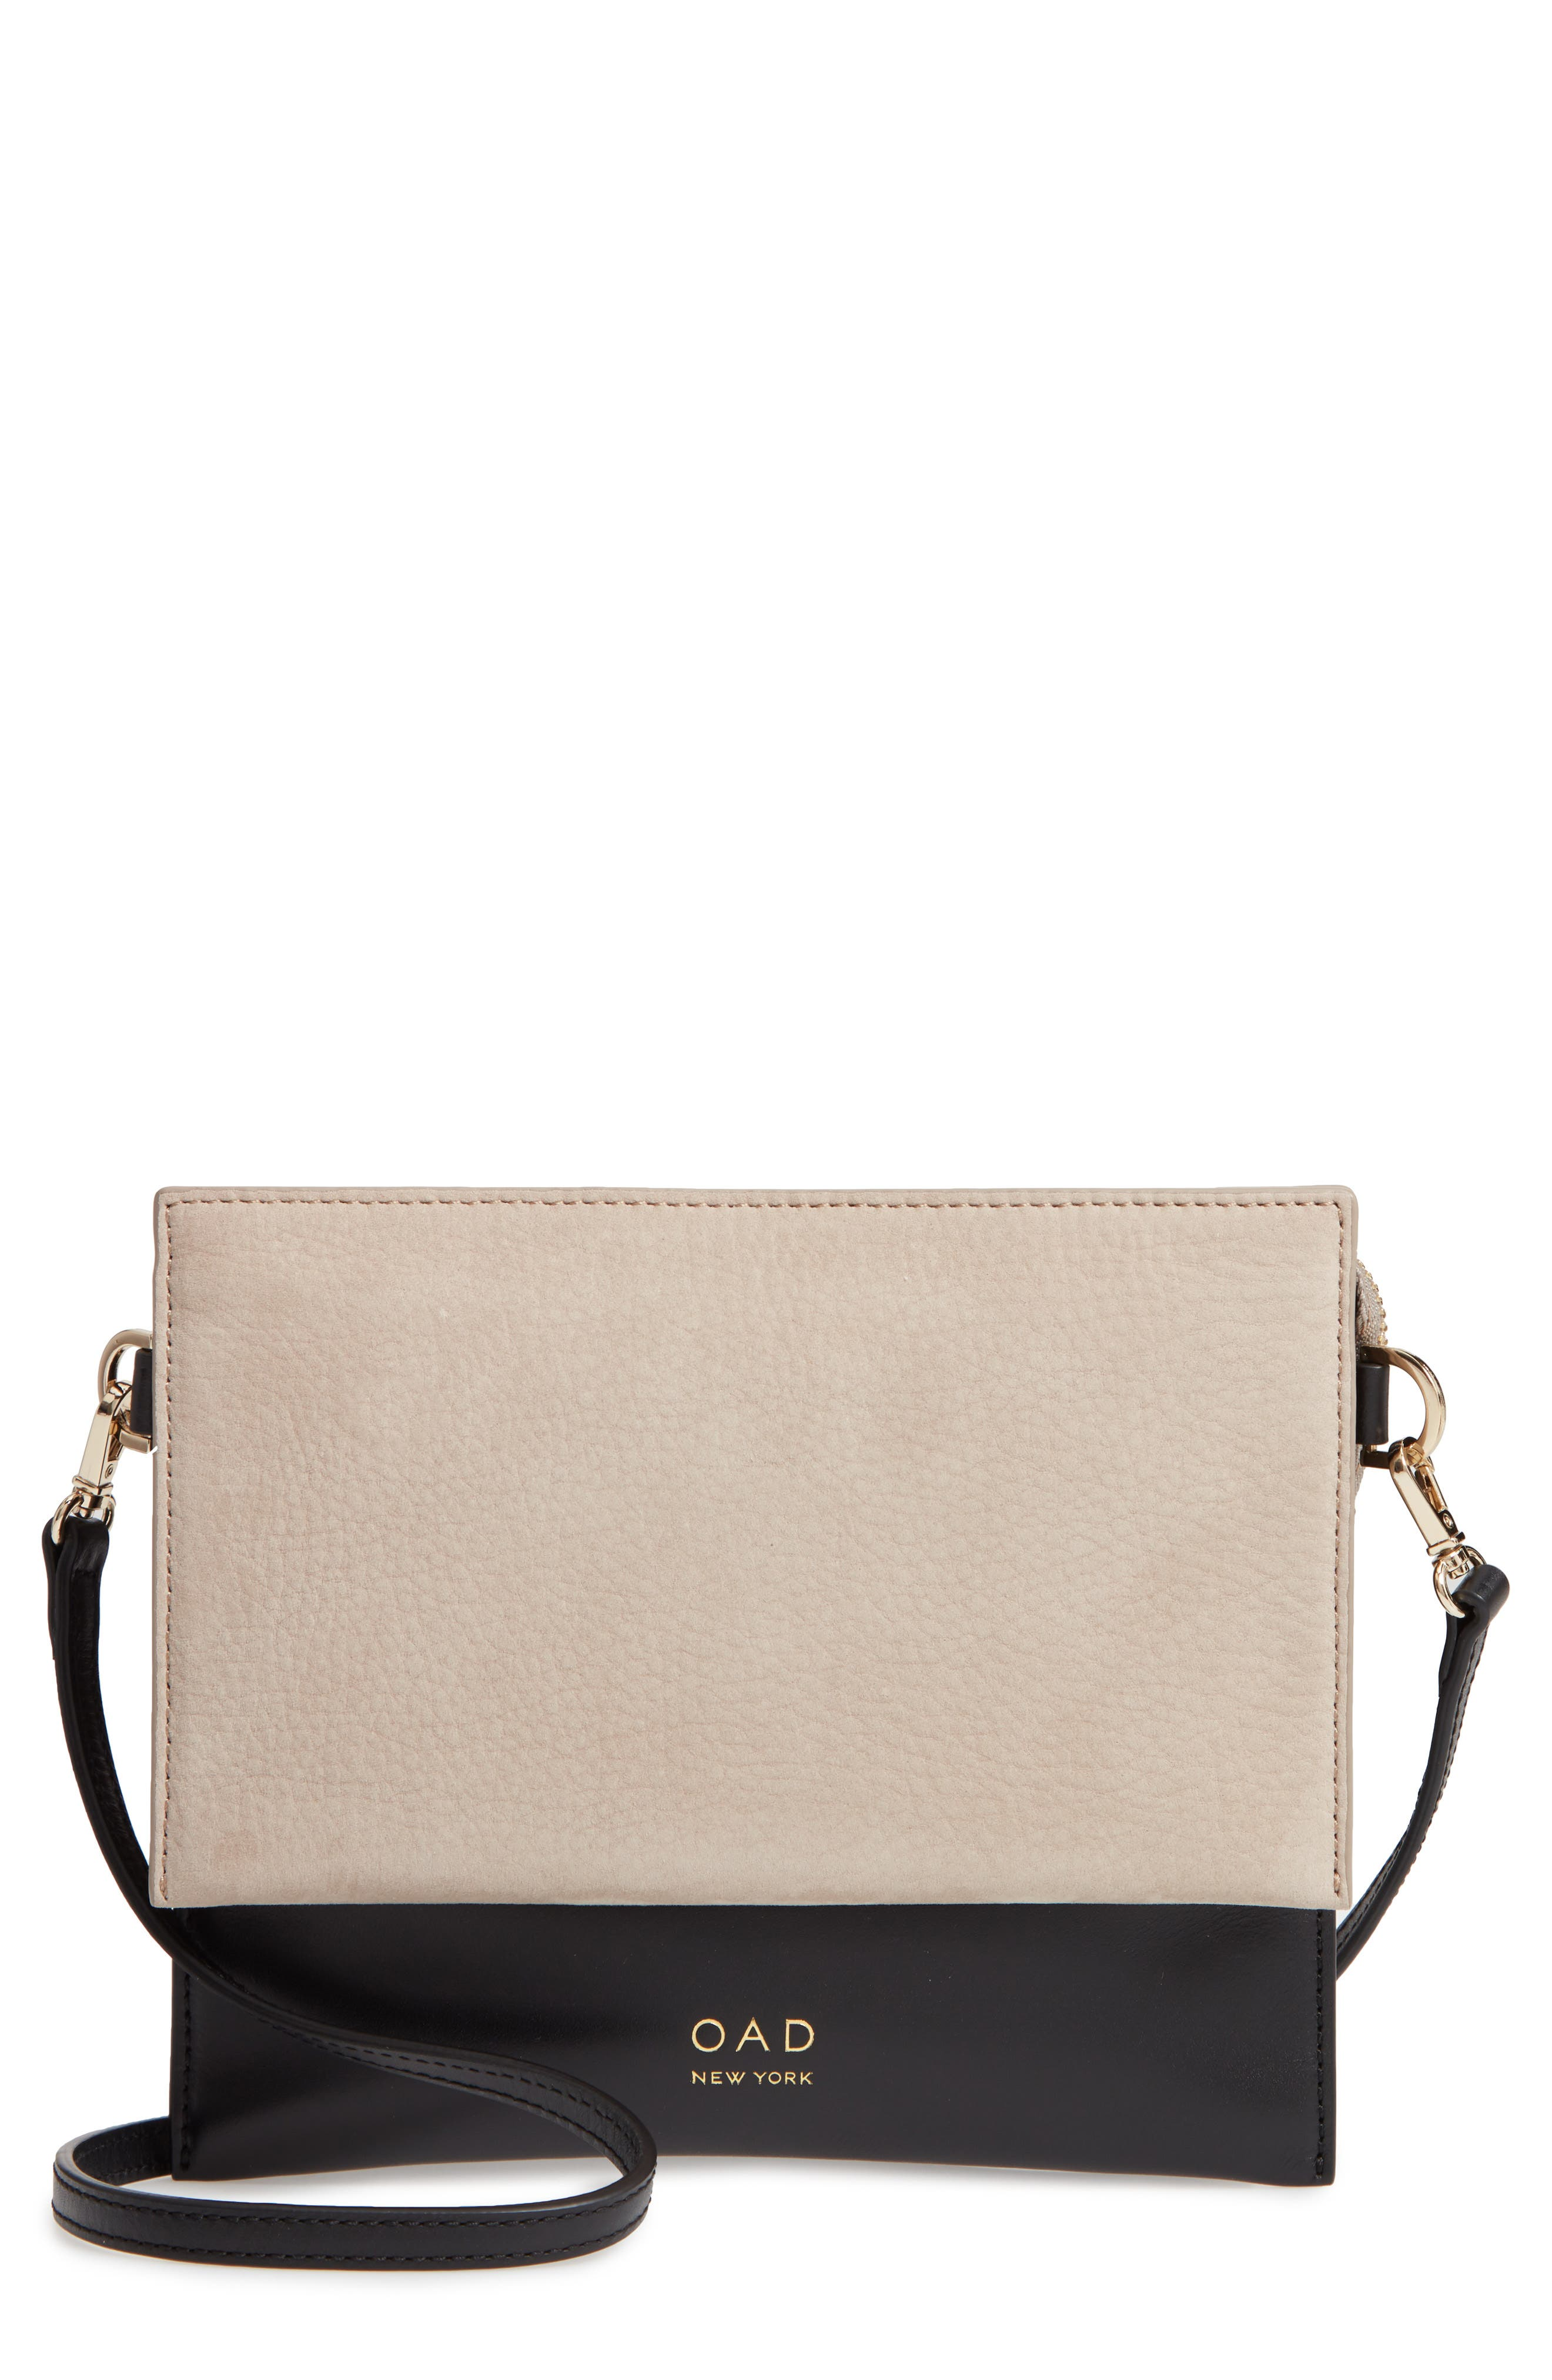 Triple Leather & Suede Crossbody Bag,                             Main thumbnail 1, color,                             TAUPE/ TRUE BLACK